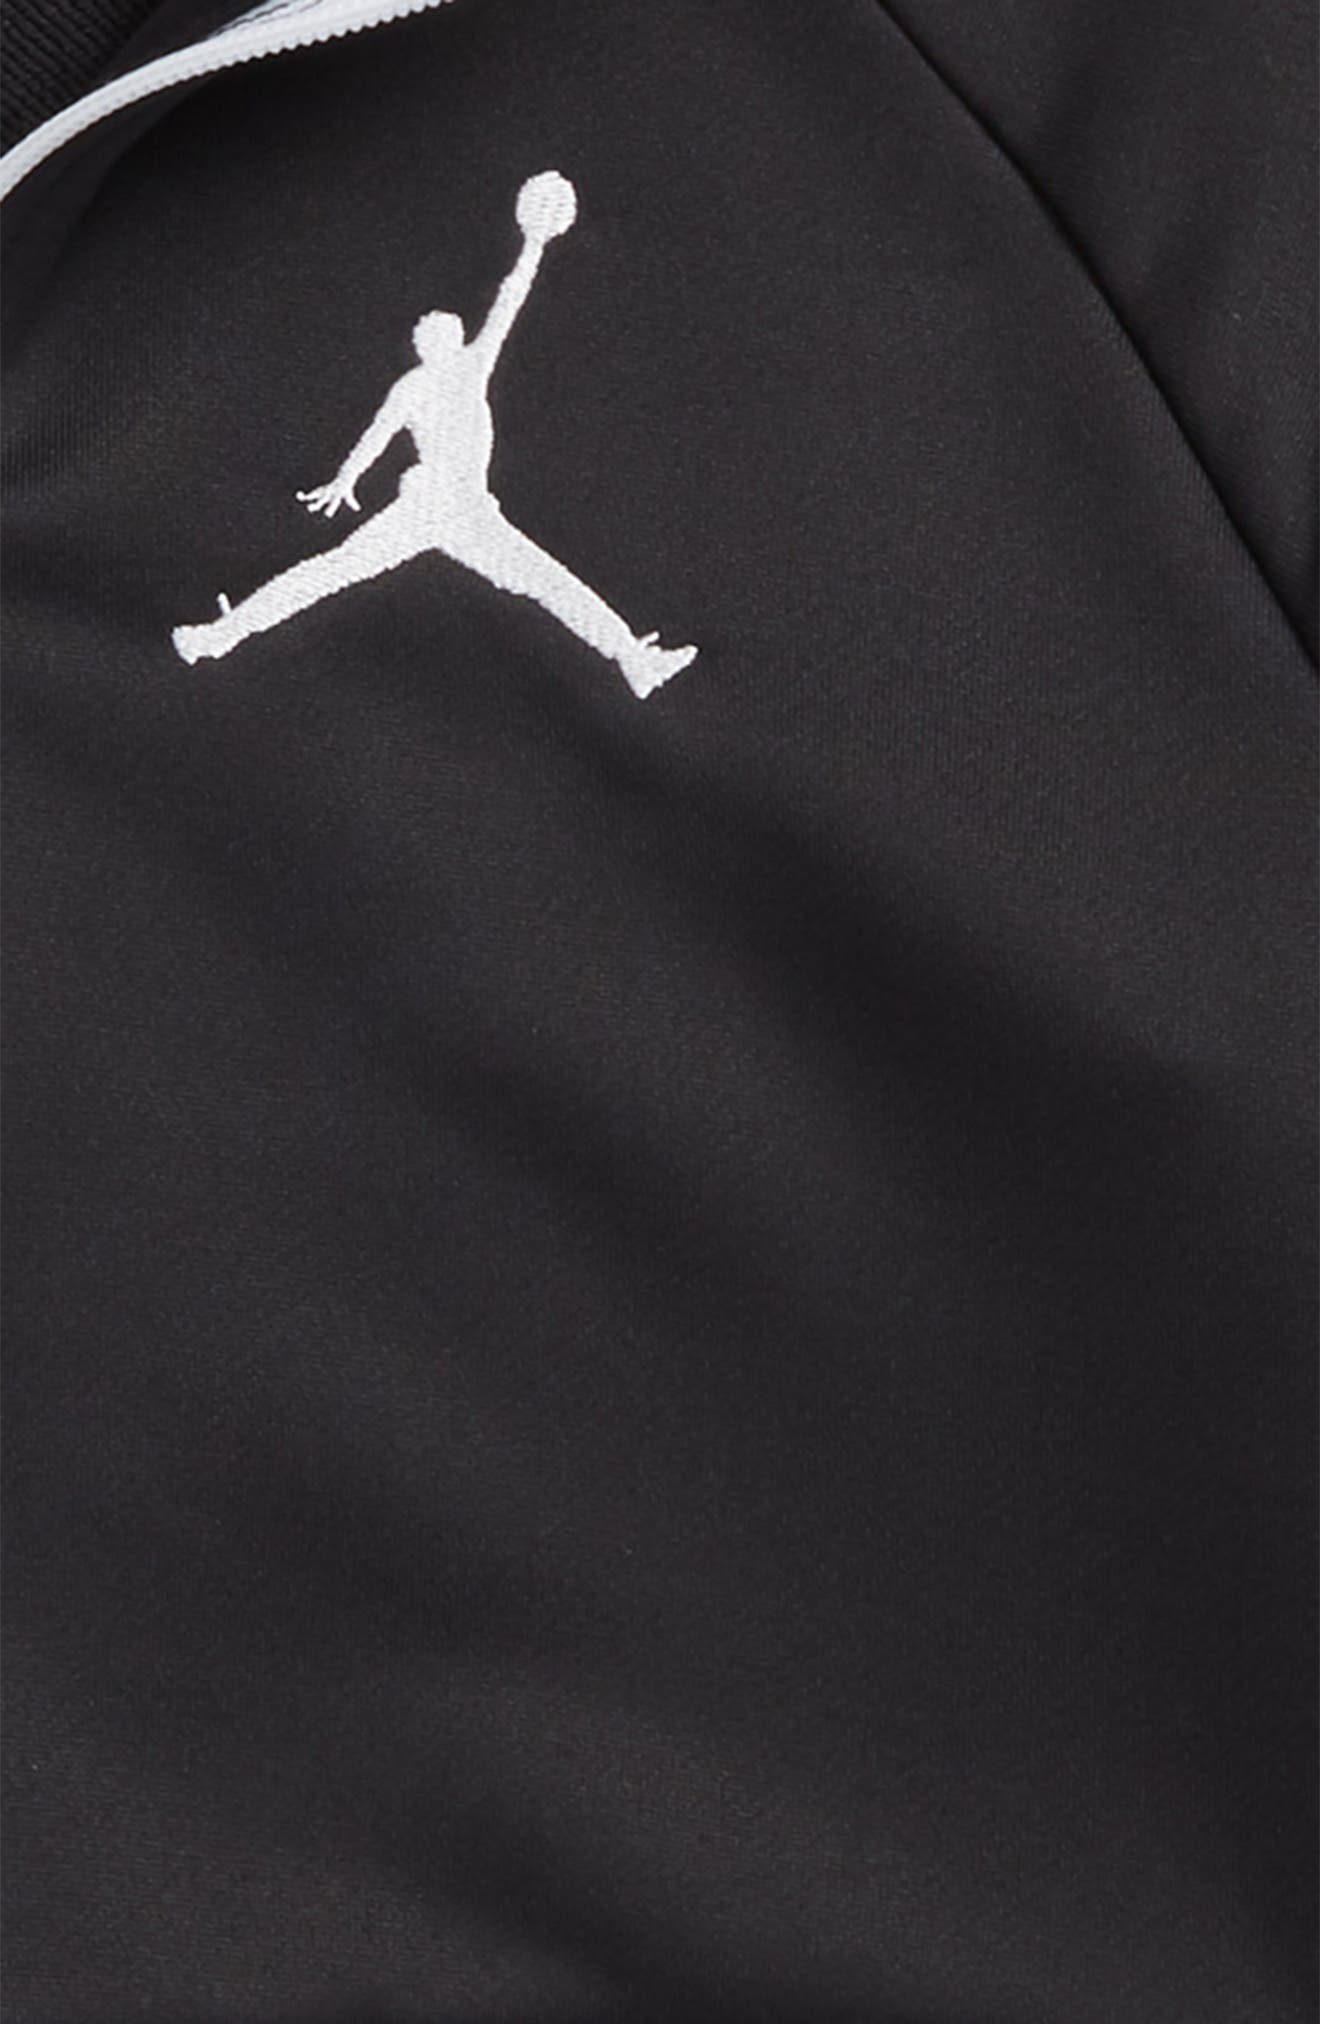 Jordan AJ 90s Tricot Jacket,                             Alternate thumbnail 2, color,                             004